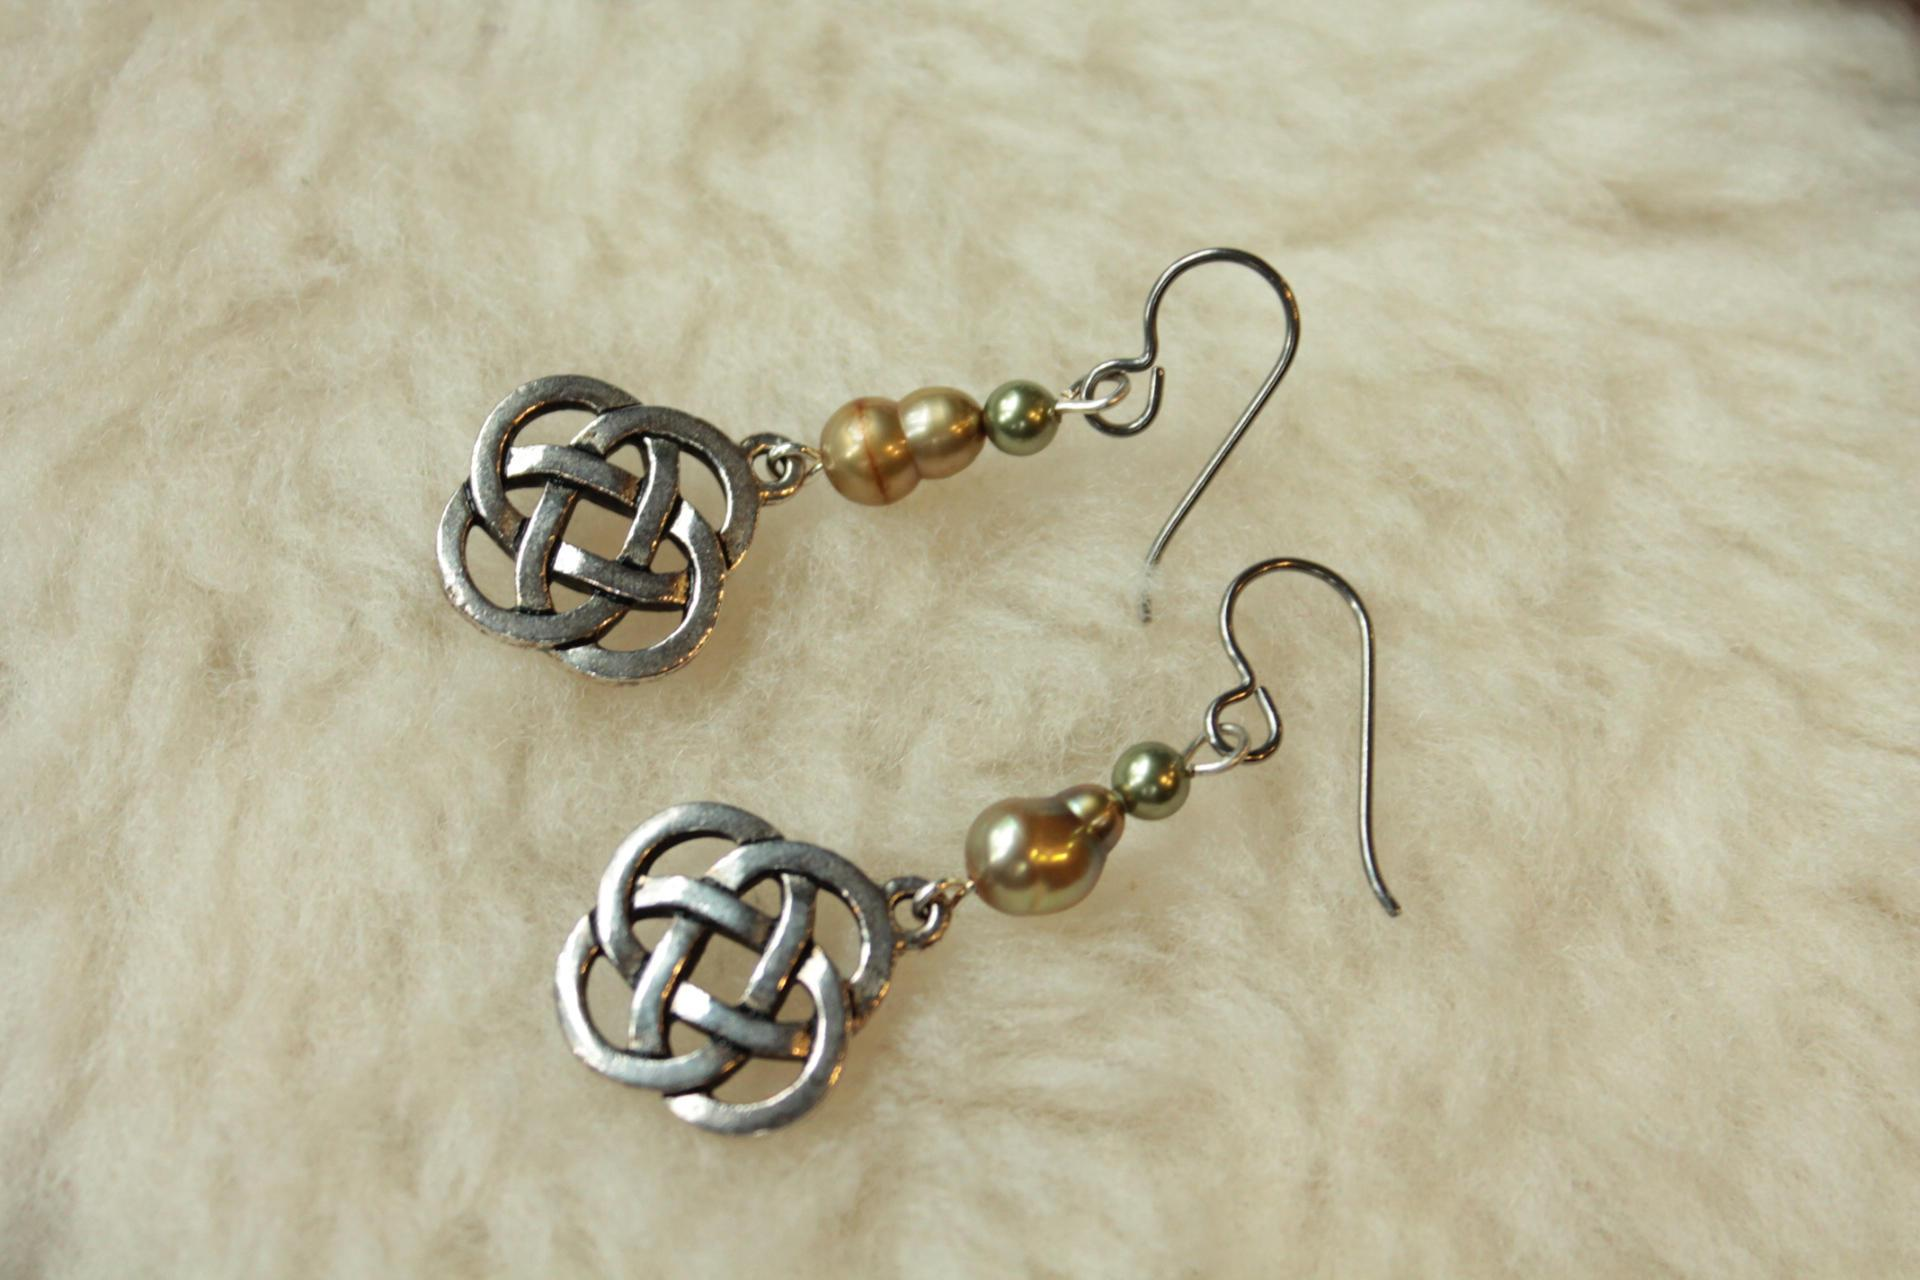 Celtic Knots Niobium Earrings Anium Surgical Steel Nickel Free And Hypoallergenic For Sensitive Ears